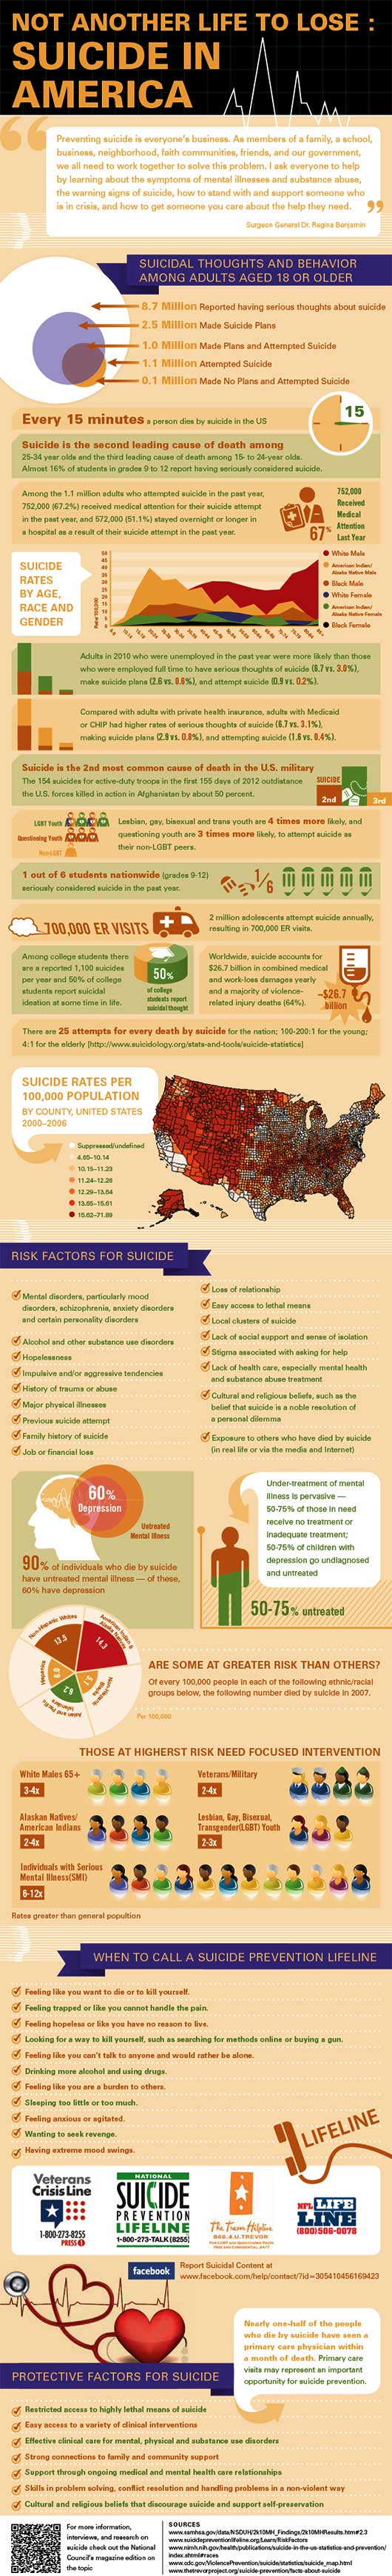 Suicide in America Infographic